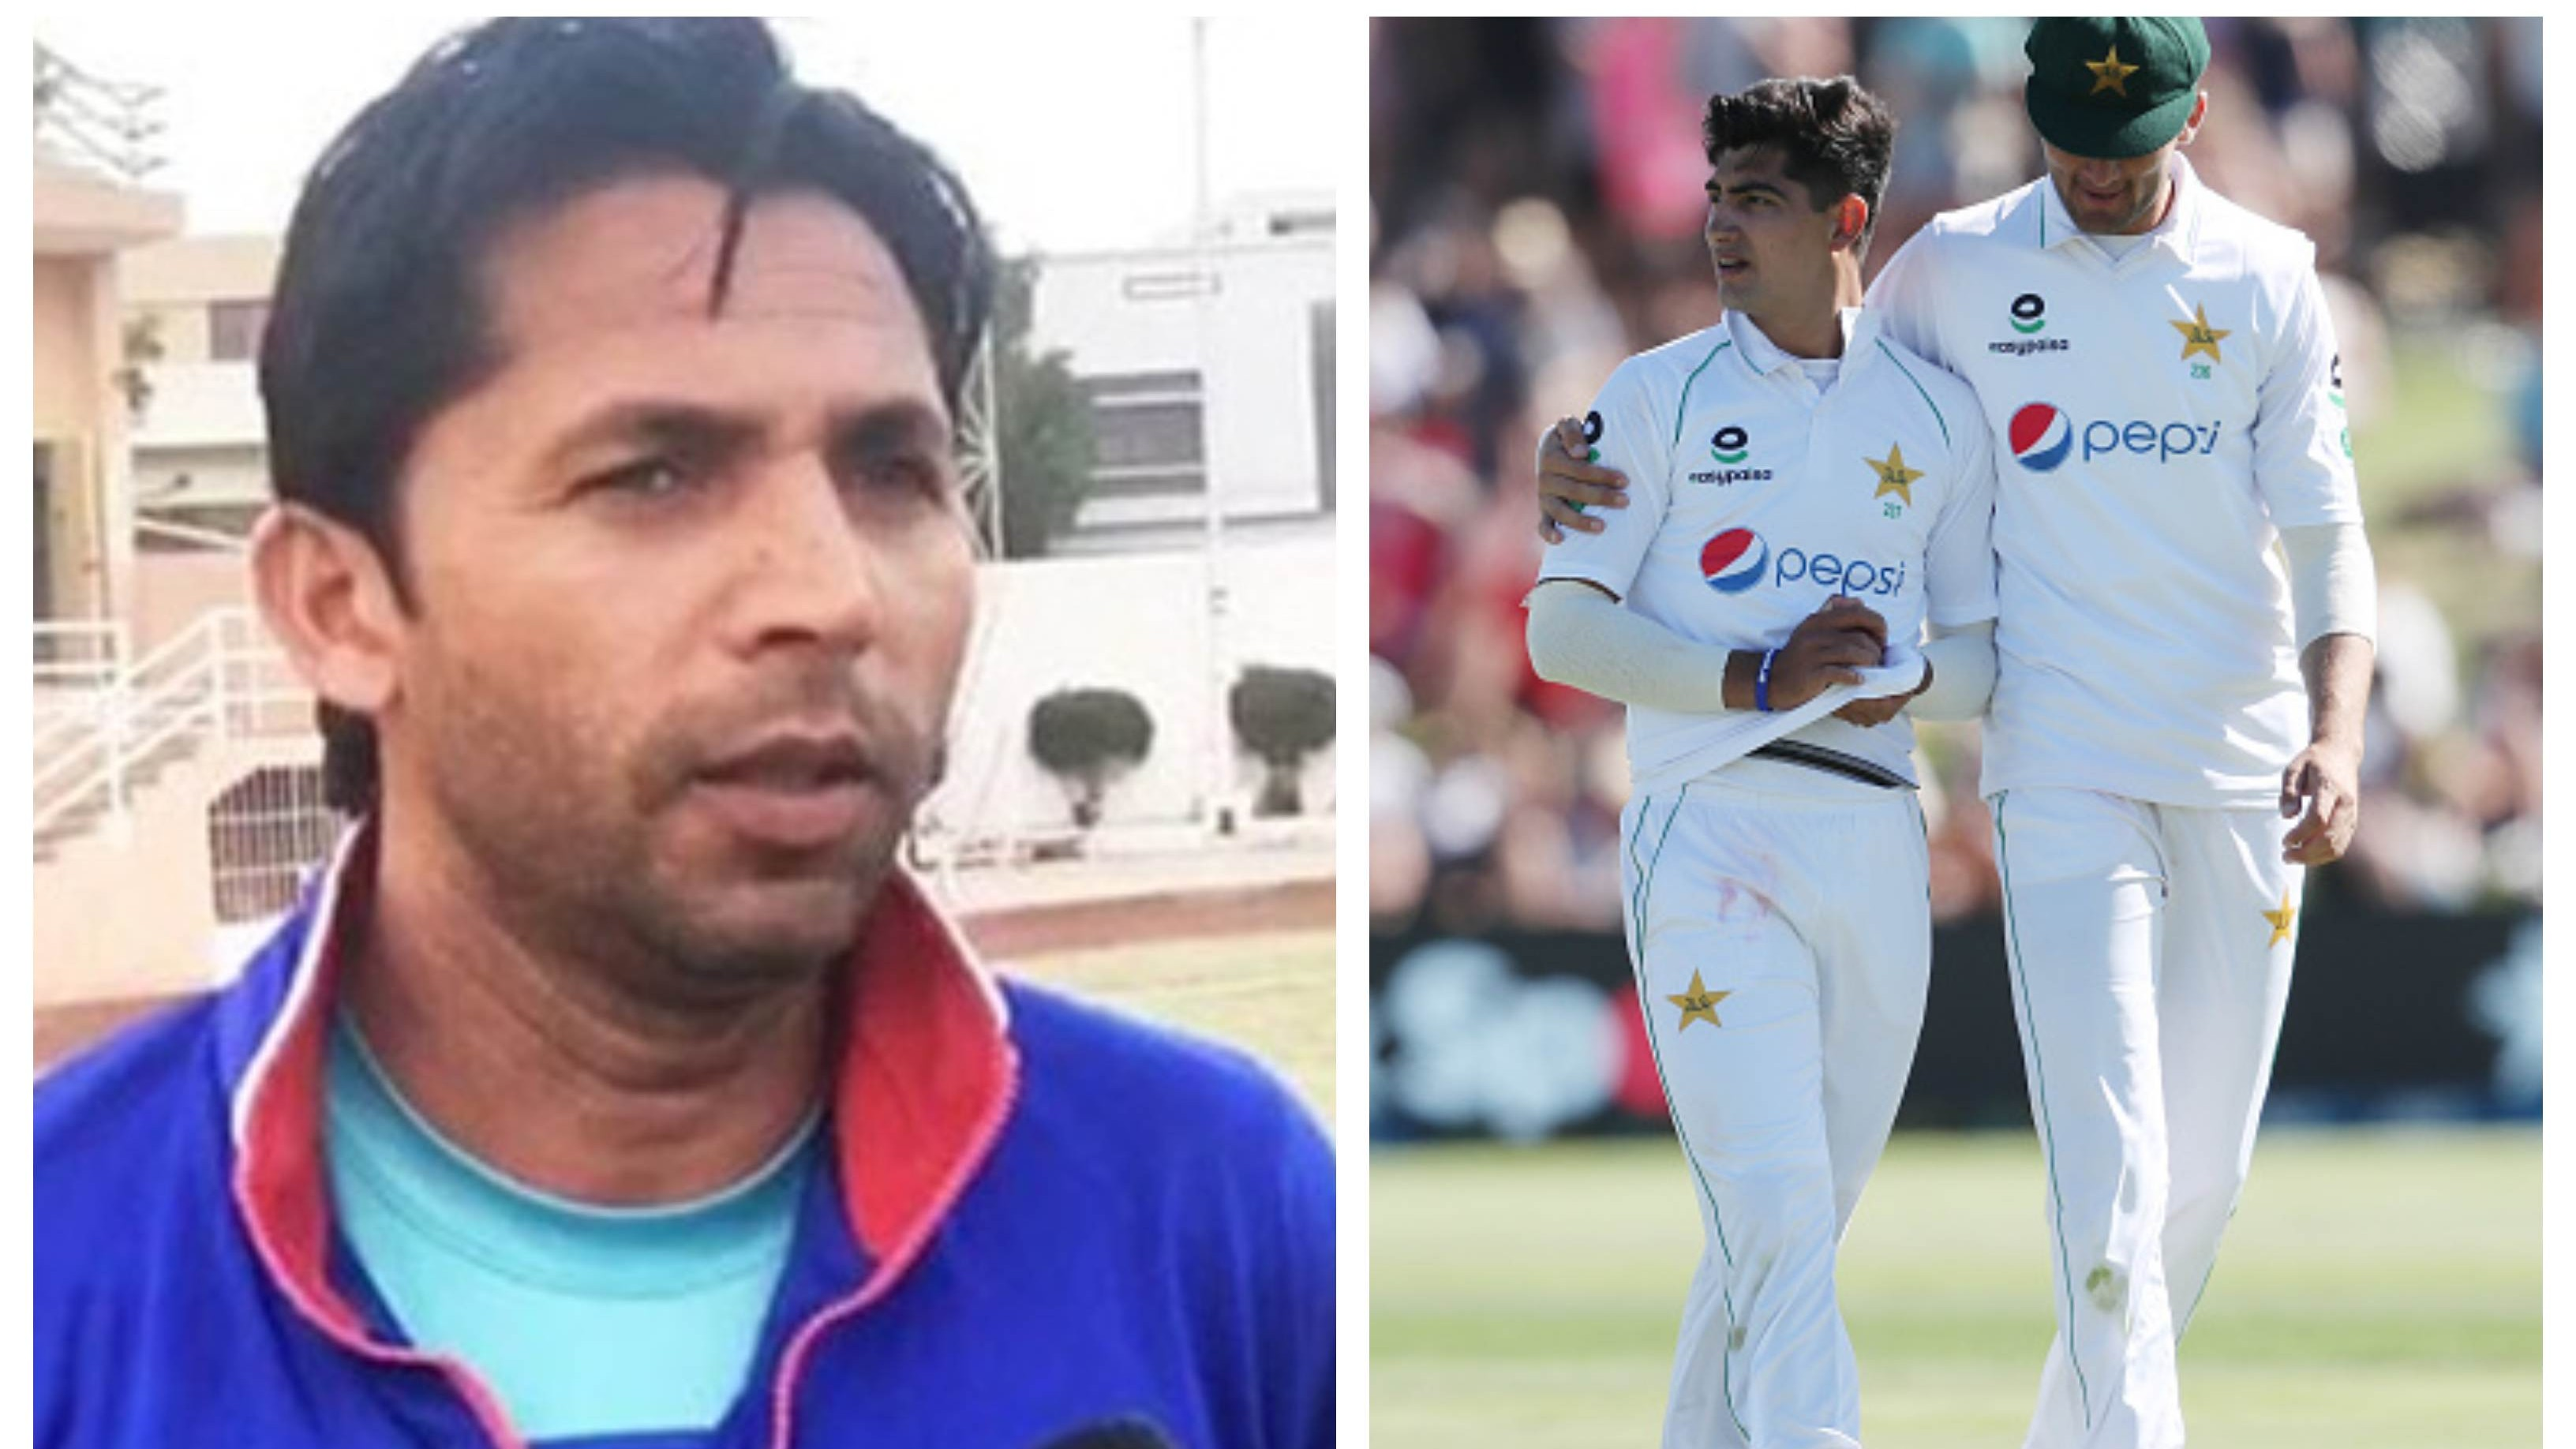 'They are 17-18 on paper but actually 27-28 years old': Mohammad Asif on current Pakistan pacers